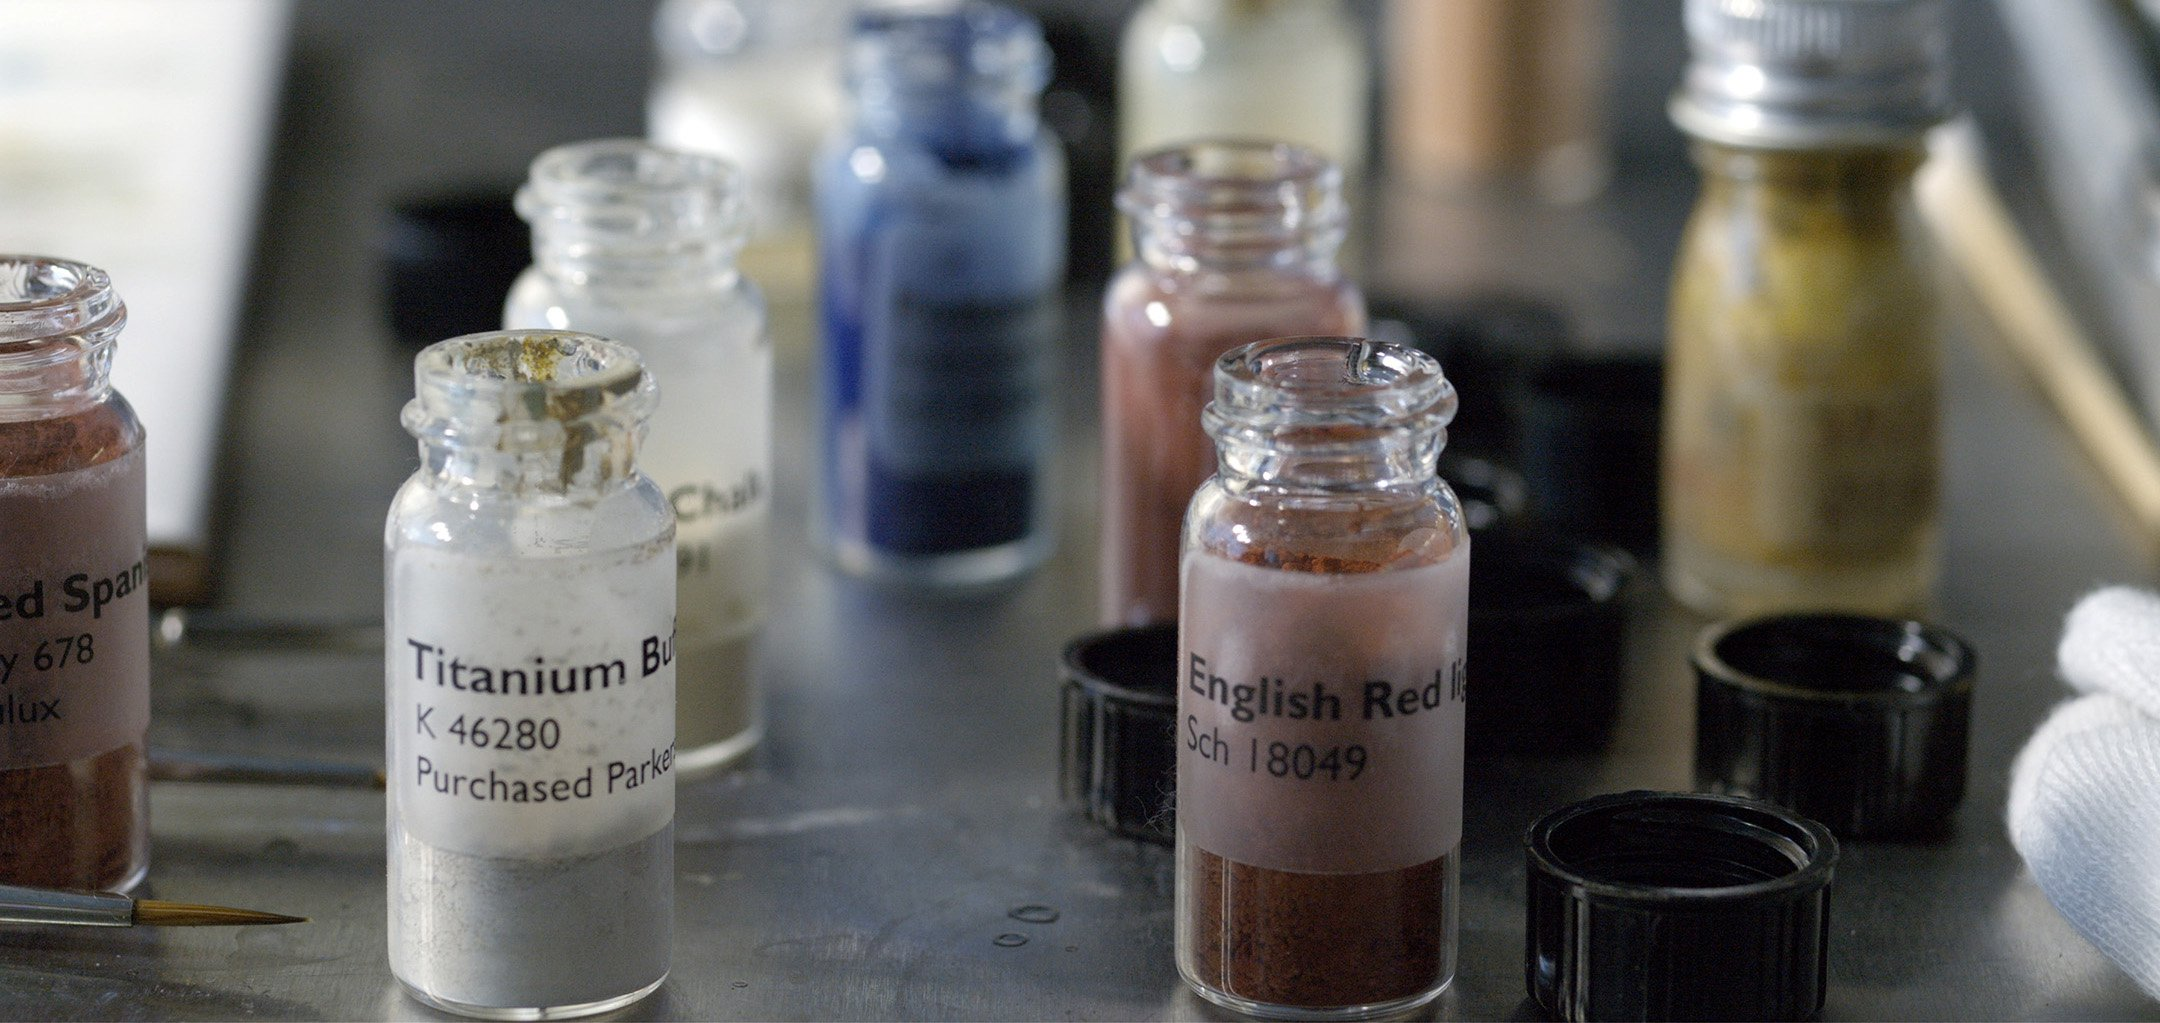 Pigments for retouching. Still from 'Darling Darling' by Gabriella Hirst 2020 IPMIC Commission